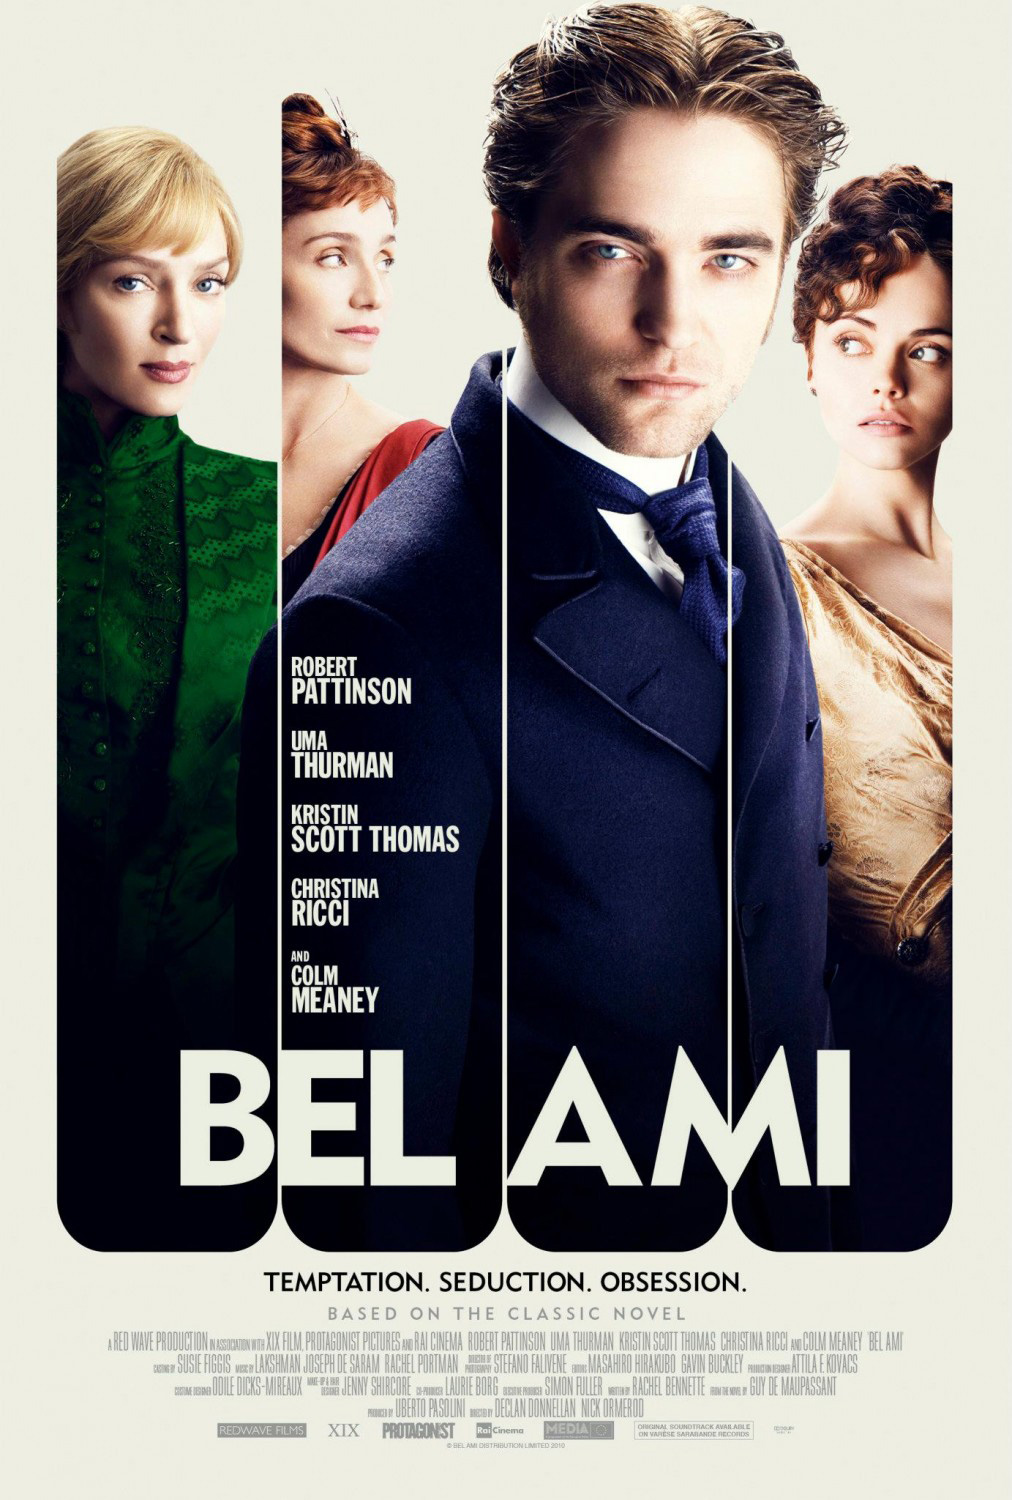 2-BELAMI